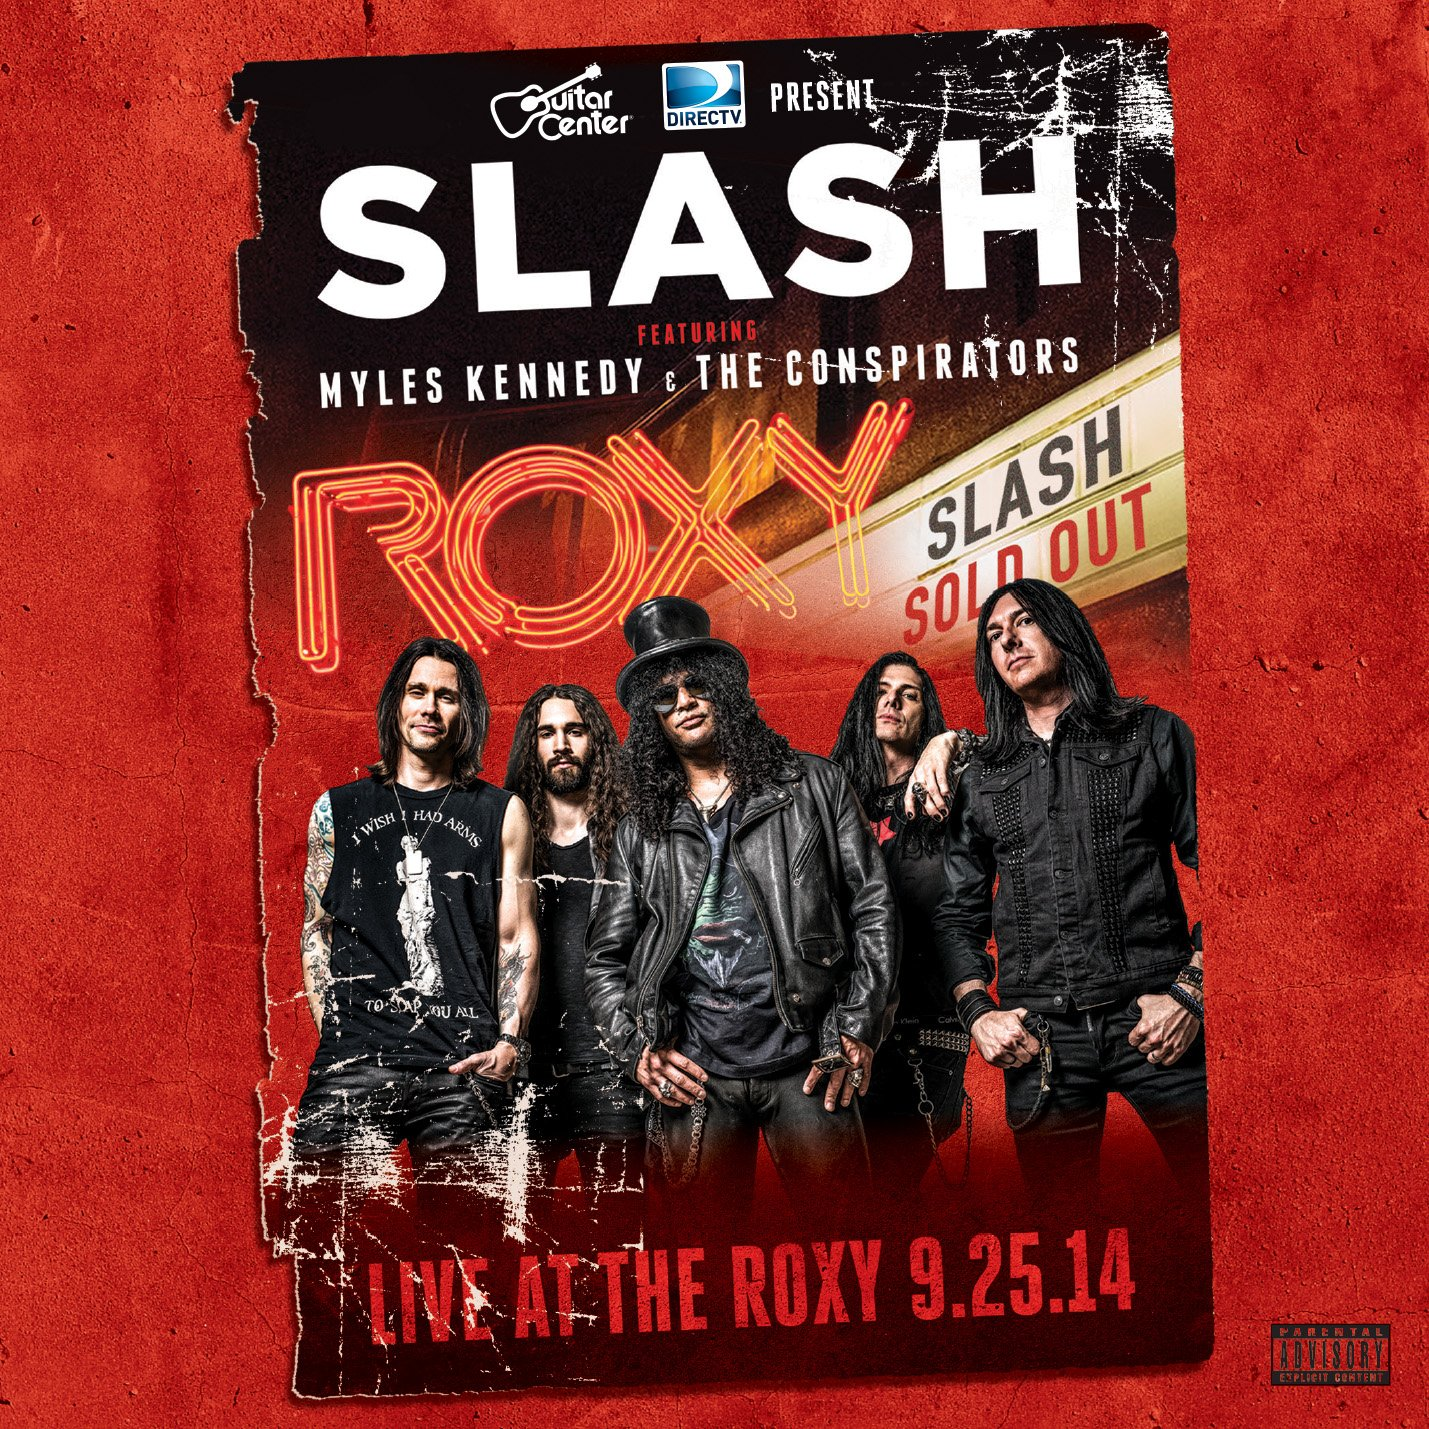 Live At The Roxy 09.25.14 [2 CD] by Armoury Records